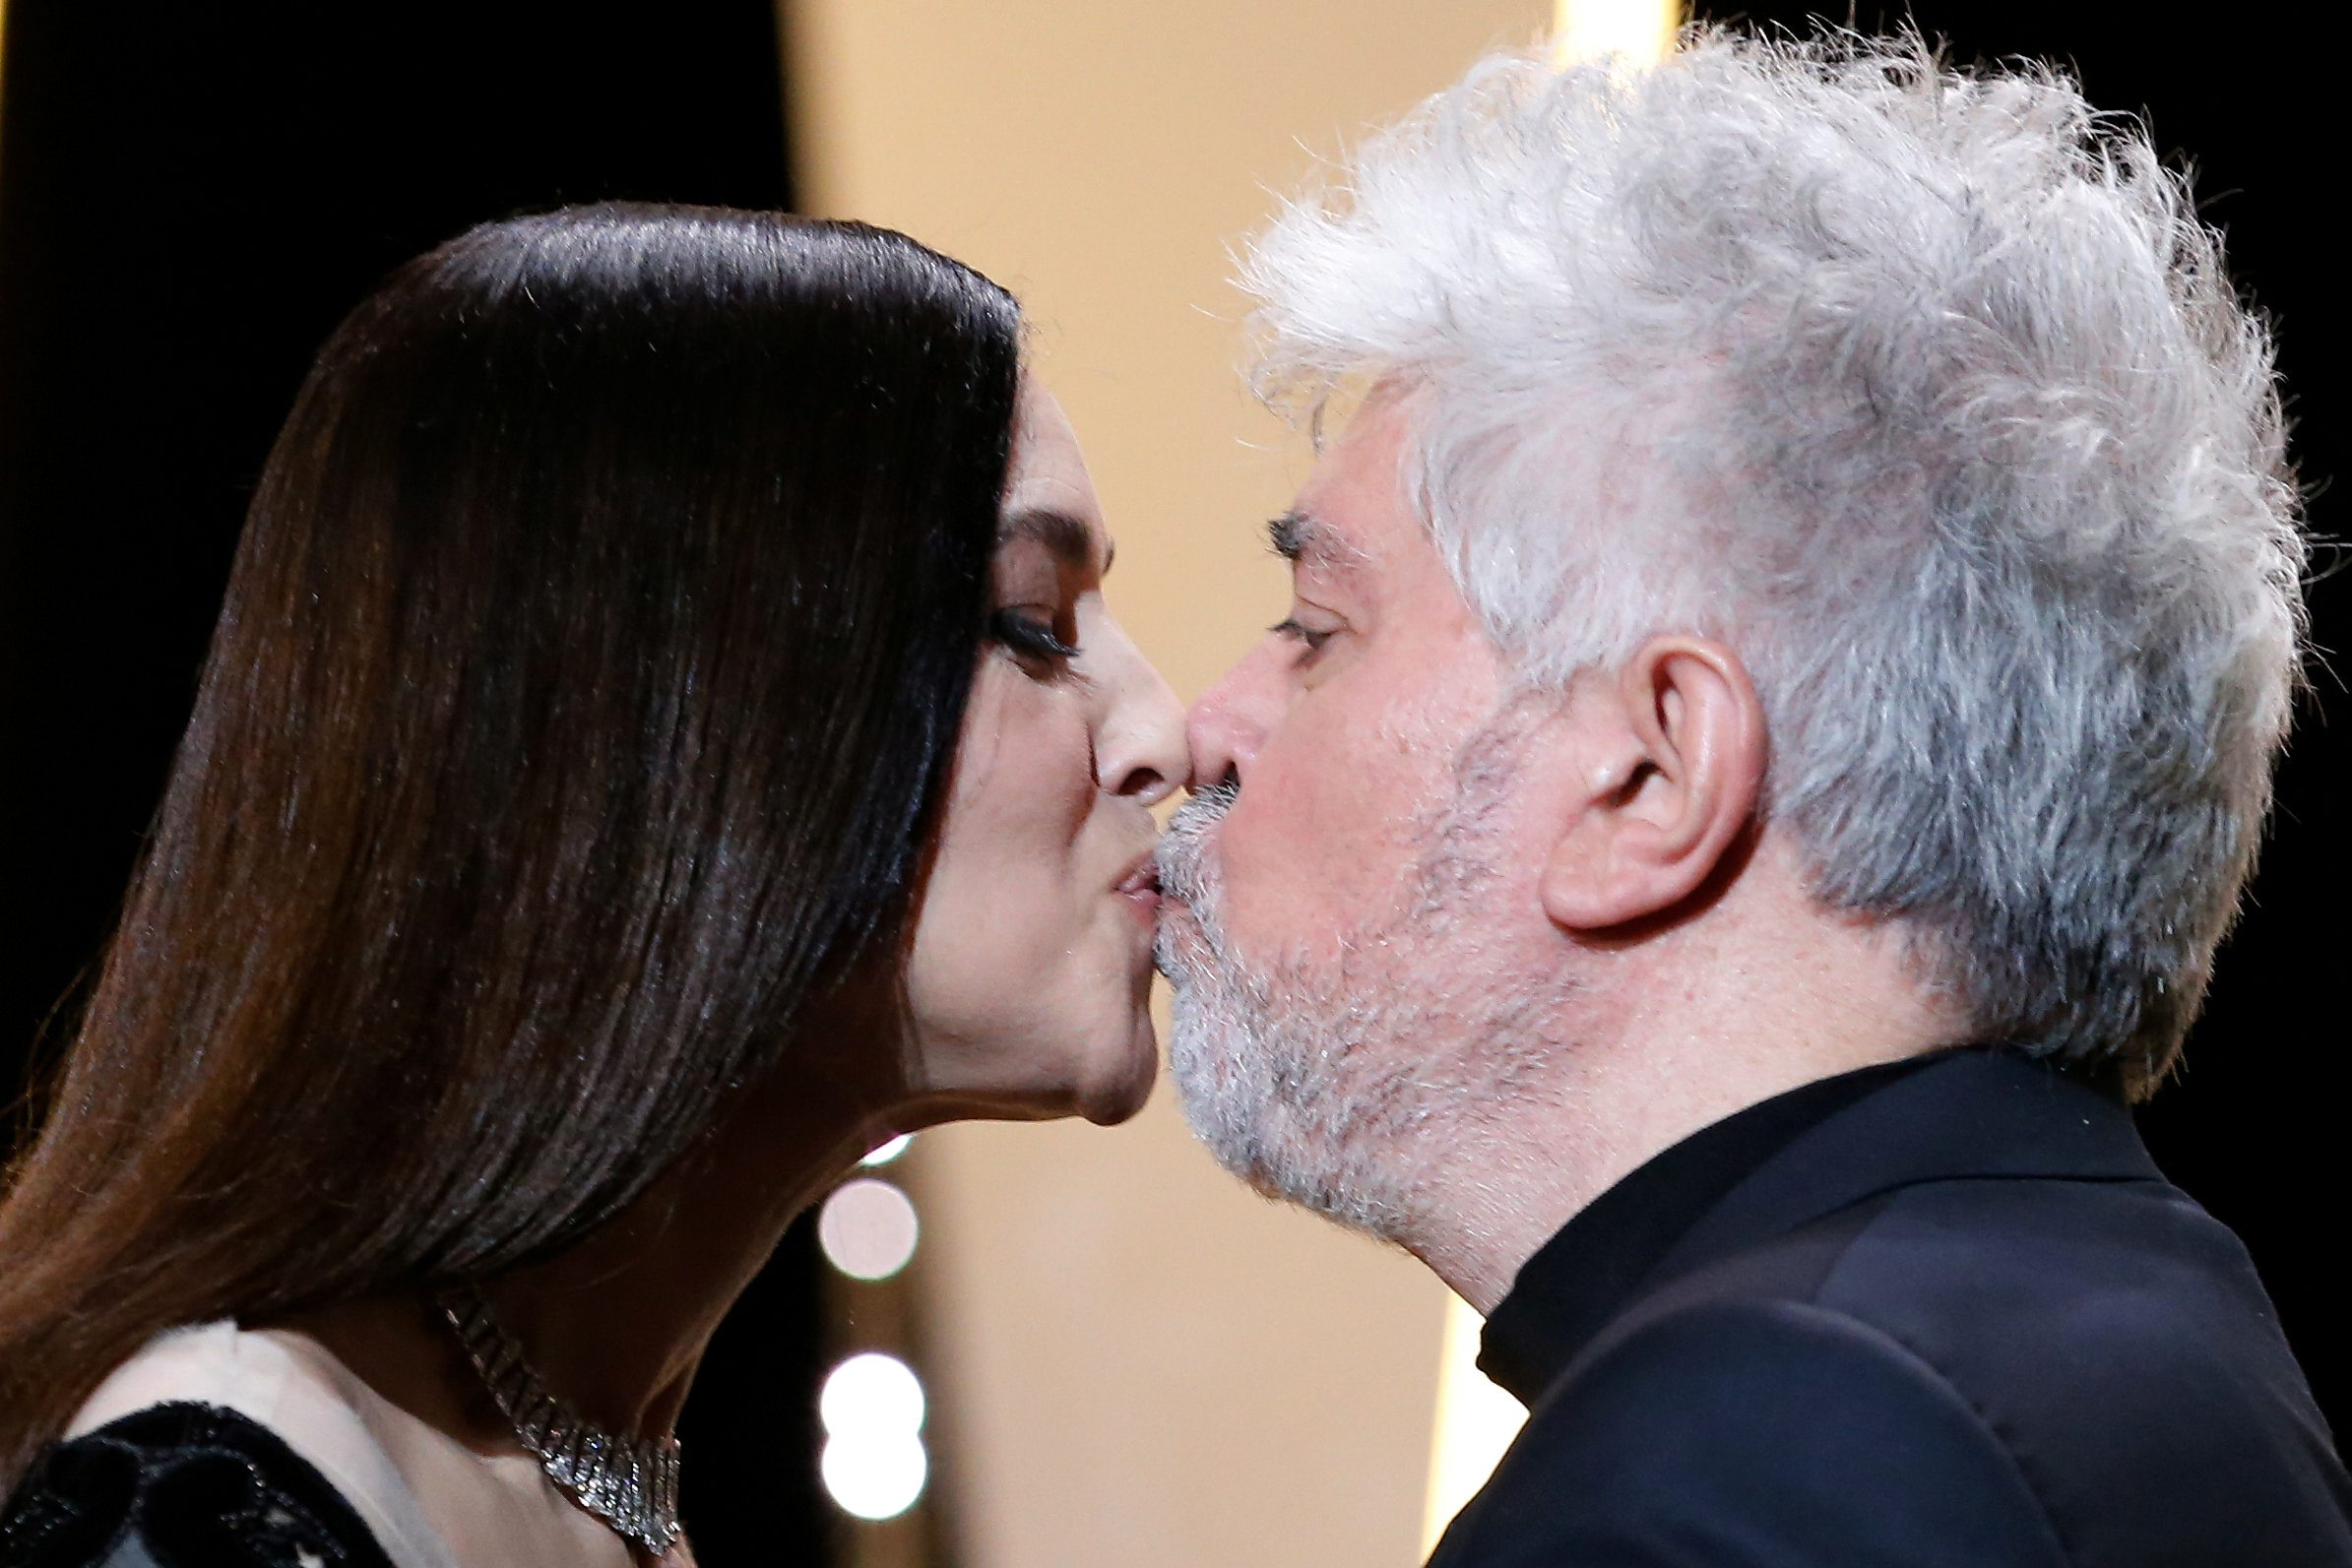 70th Cannes Film Festival - Closing ceremony - Cannes, France. 28/05/2017. Mistress of Ceremony actress Monica Bellucci kisses Director Pedro Almodovar, Jury President of the 70th Cannes Film Festival, on stage. REUTERS/Stephane Mahe     TPX IMAGES OF THE DAY